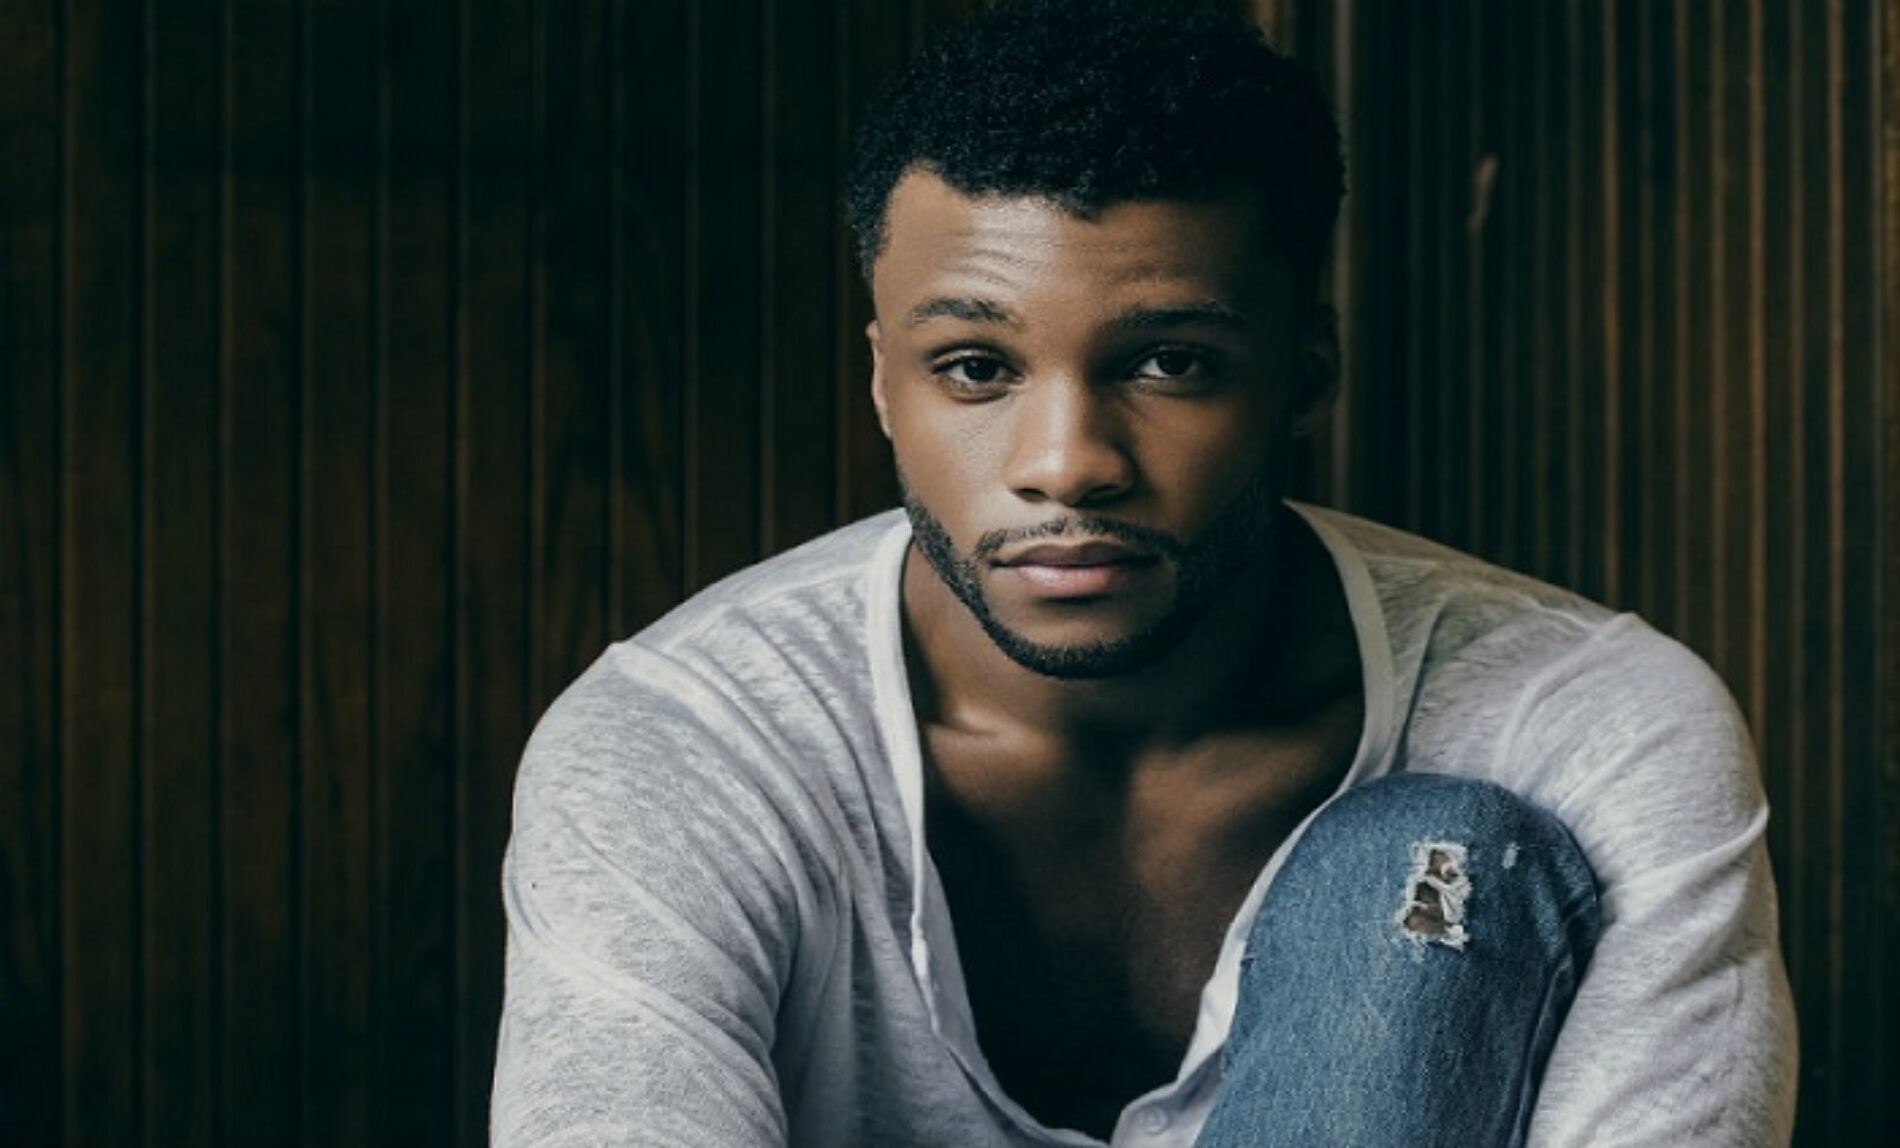 """""""For Me, It's Spiritual."""" Pose Actor, Dyllon Burnside Says Sex Between Men Is Like His Relationship With God"""